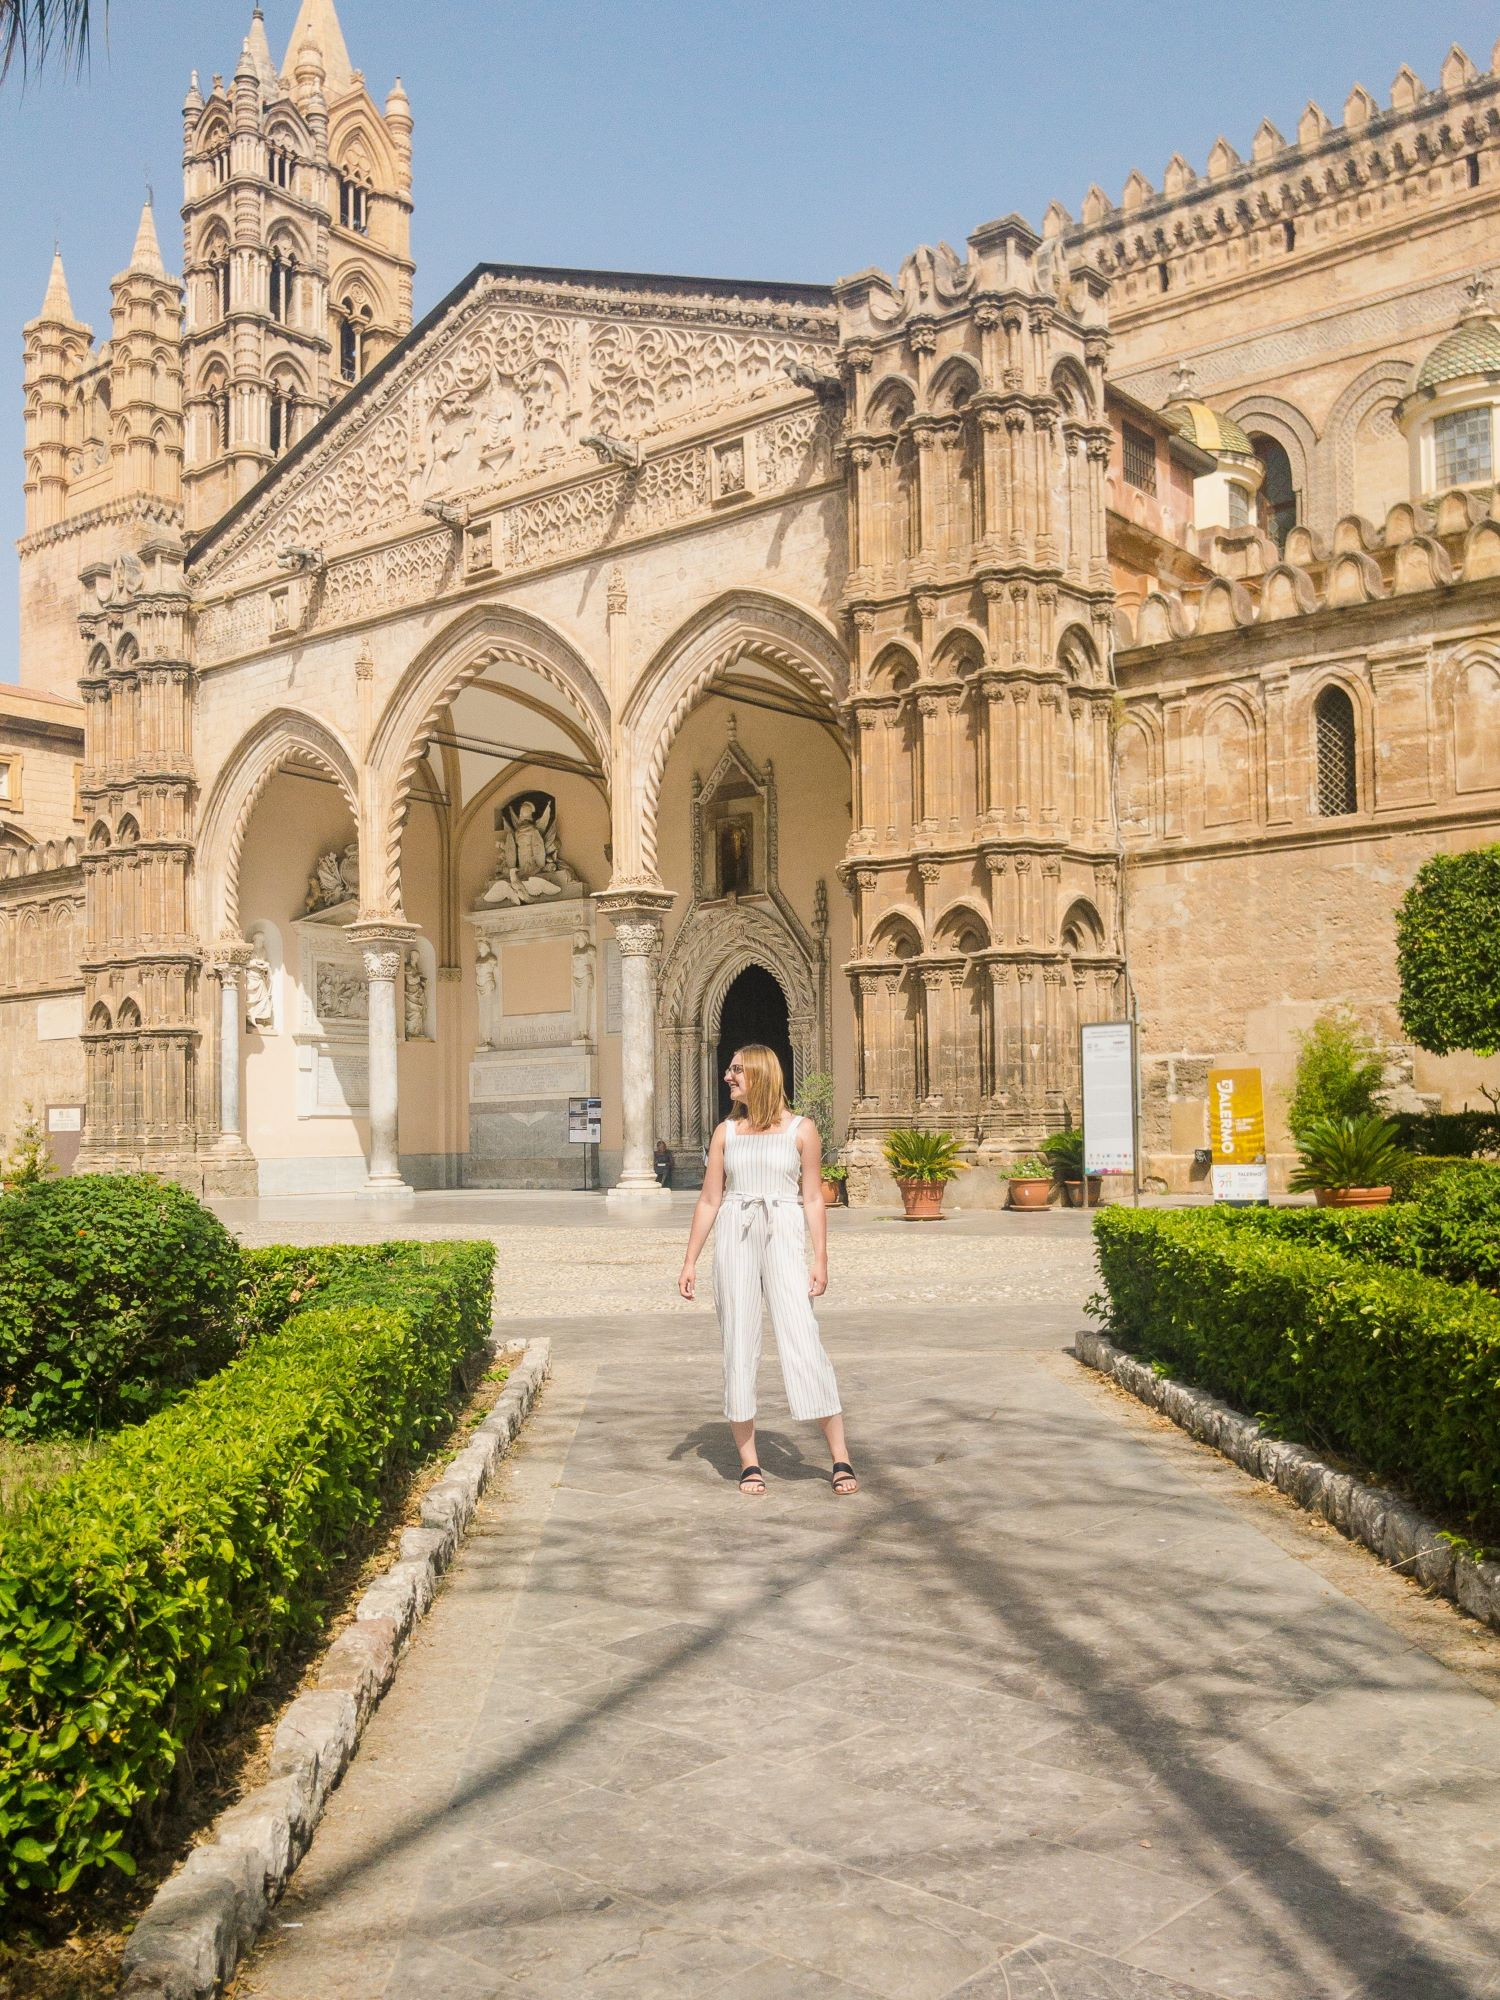 Palermo Cathedral Things To Do In Sicily.JPG